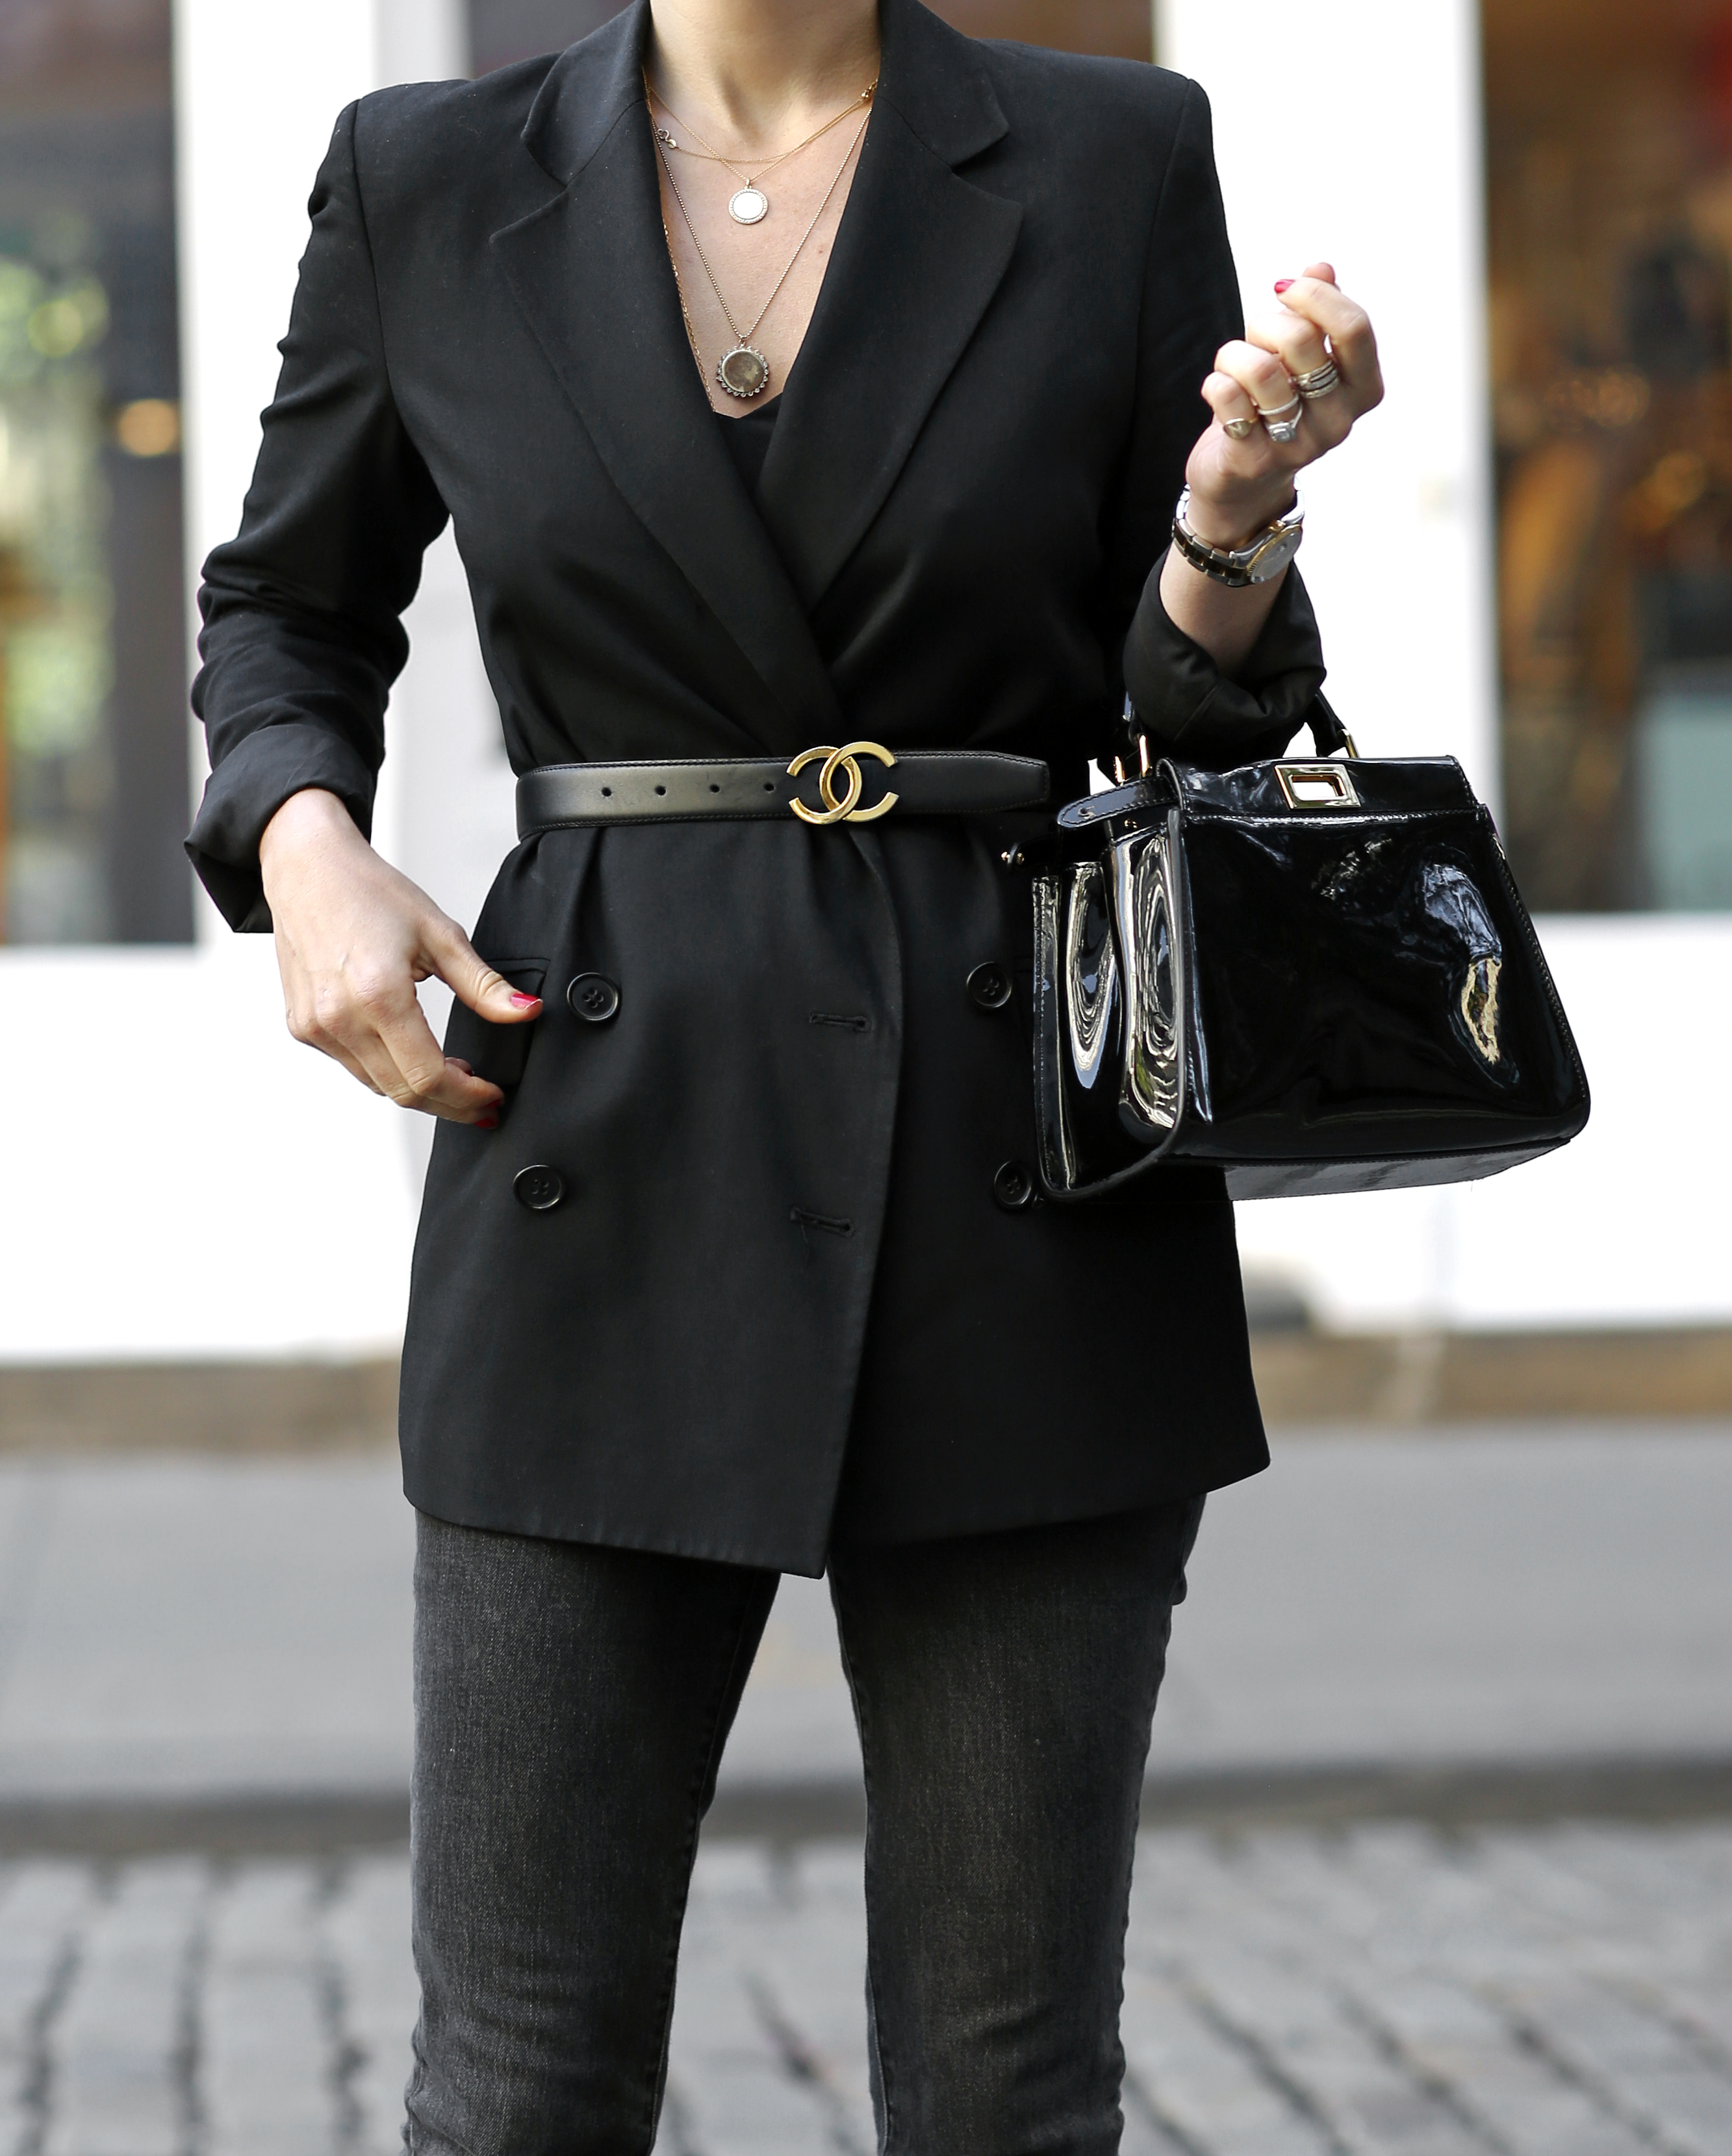 Theory Boyfriend Blazer, Vintage Chanel Belt, Helena of Brooklyn Blonde